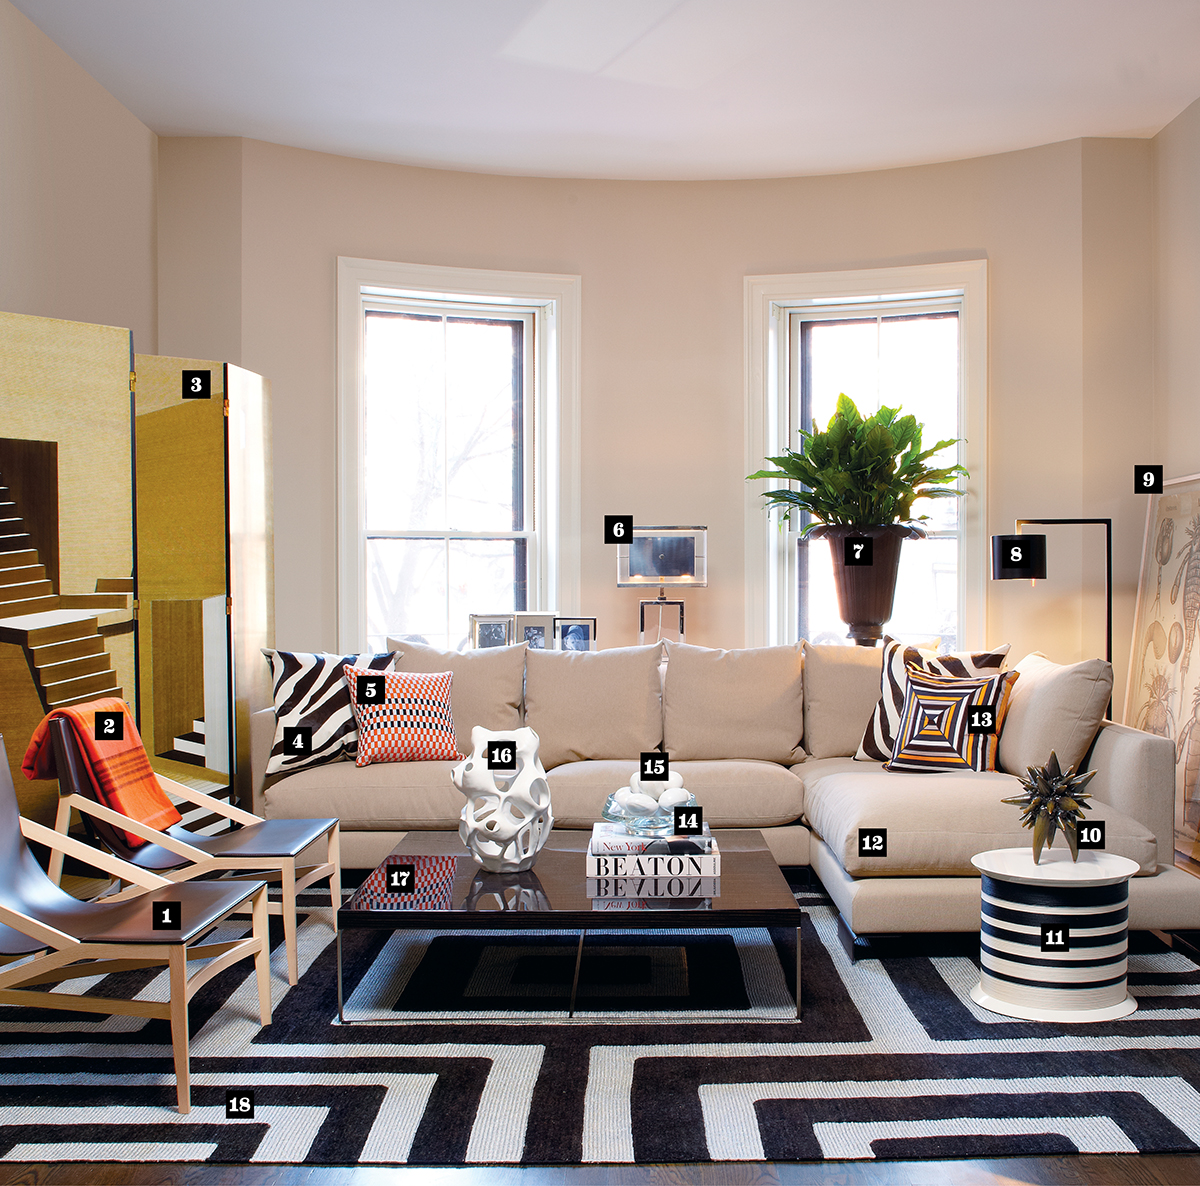 Amanda Hark And Jeffrey Osborne Of Interior Design Find Two Ways To Style A South End Living Room One Extravagant Affordable